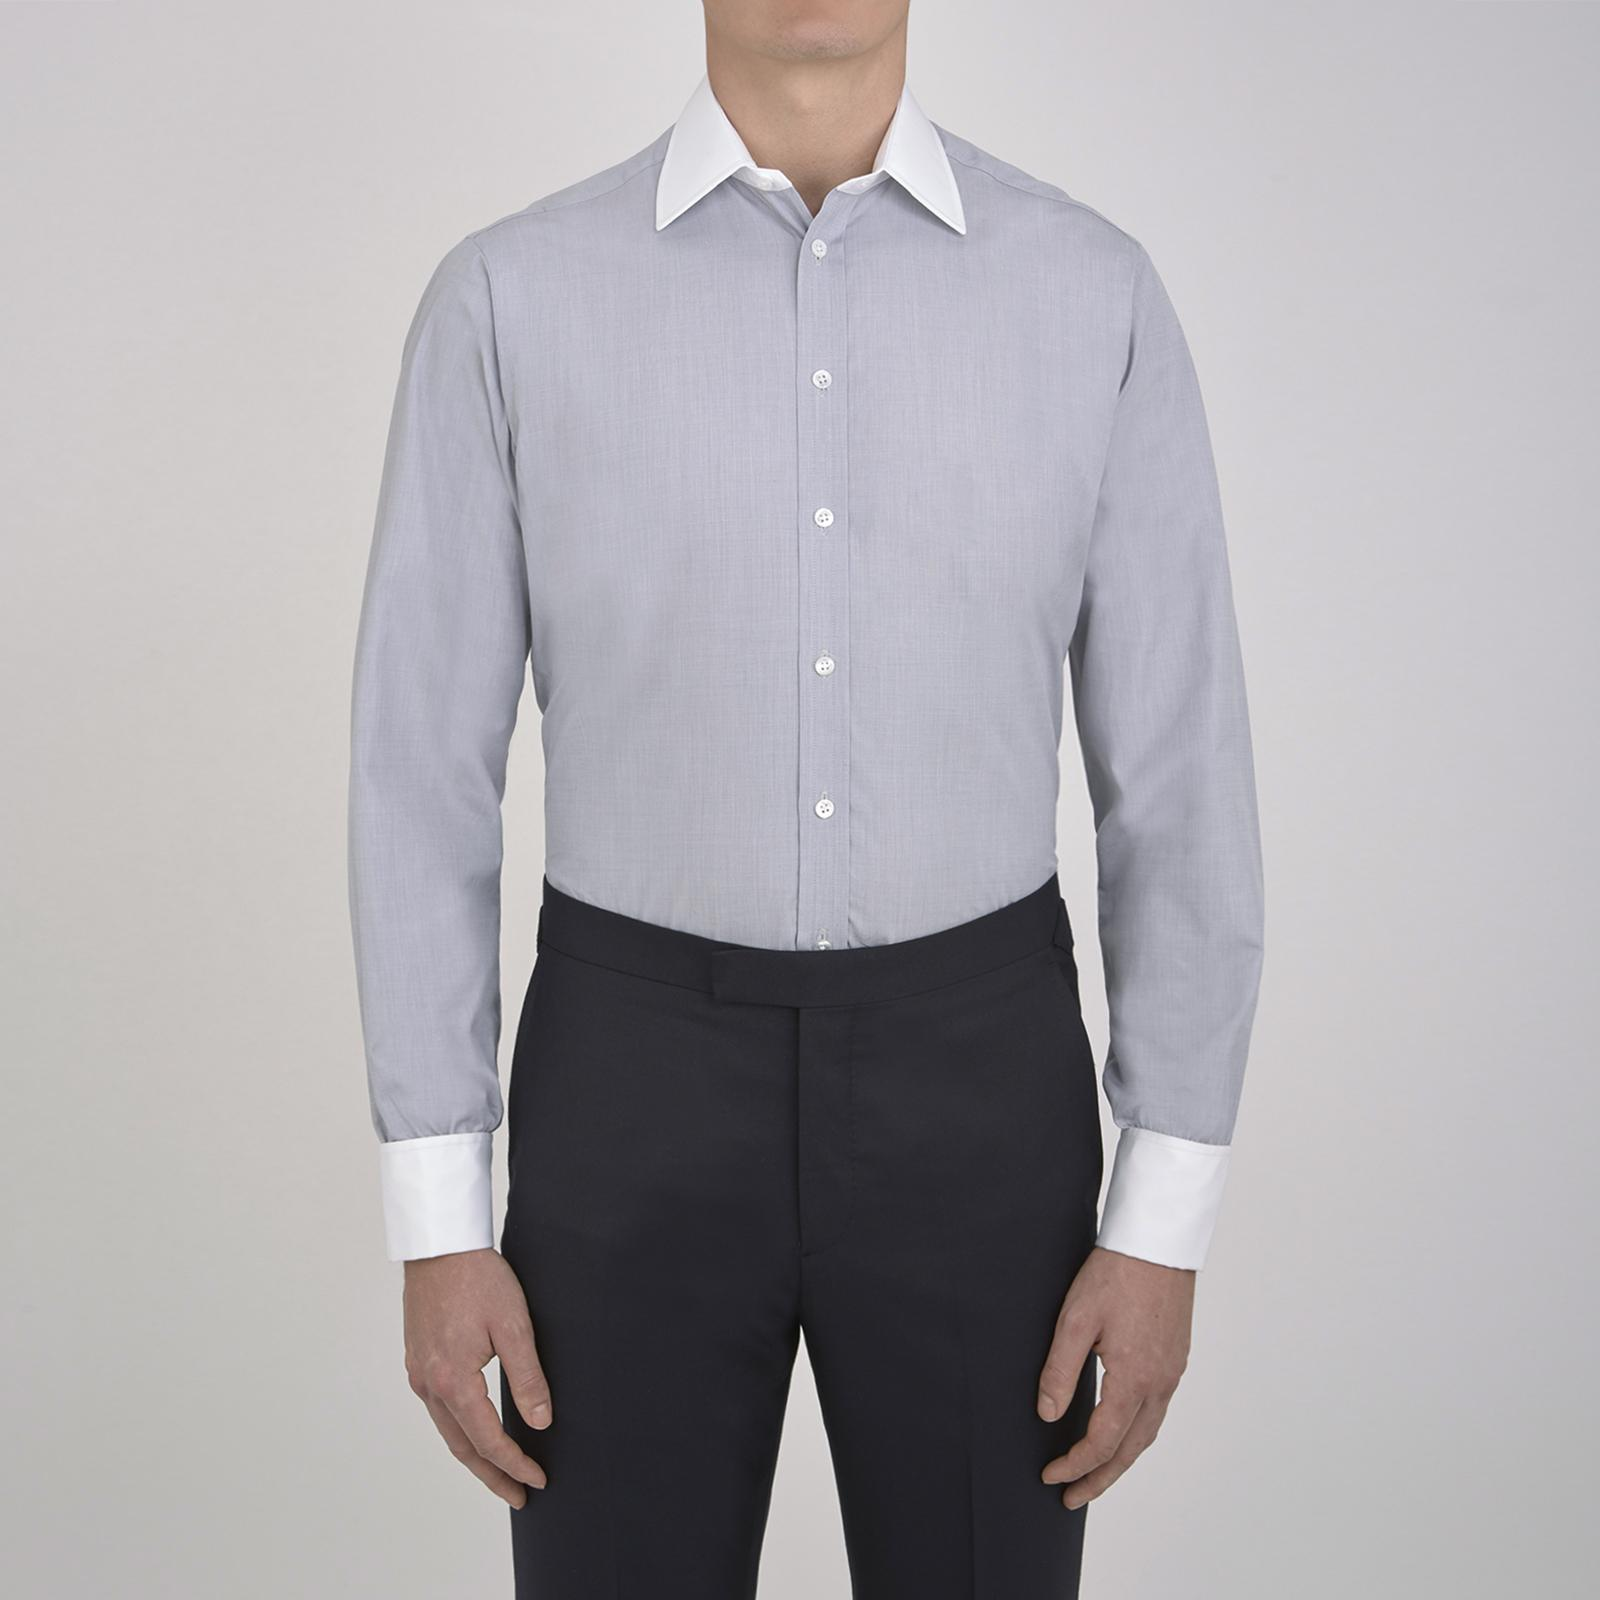 59f3768c05 Turnbull   Asser Light Grey End-on-end Cotton Shirt With White ...